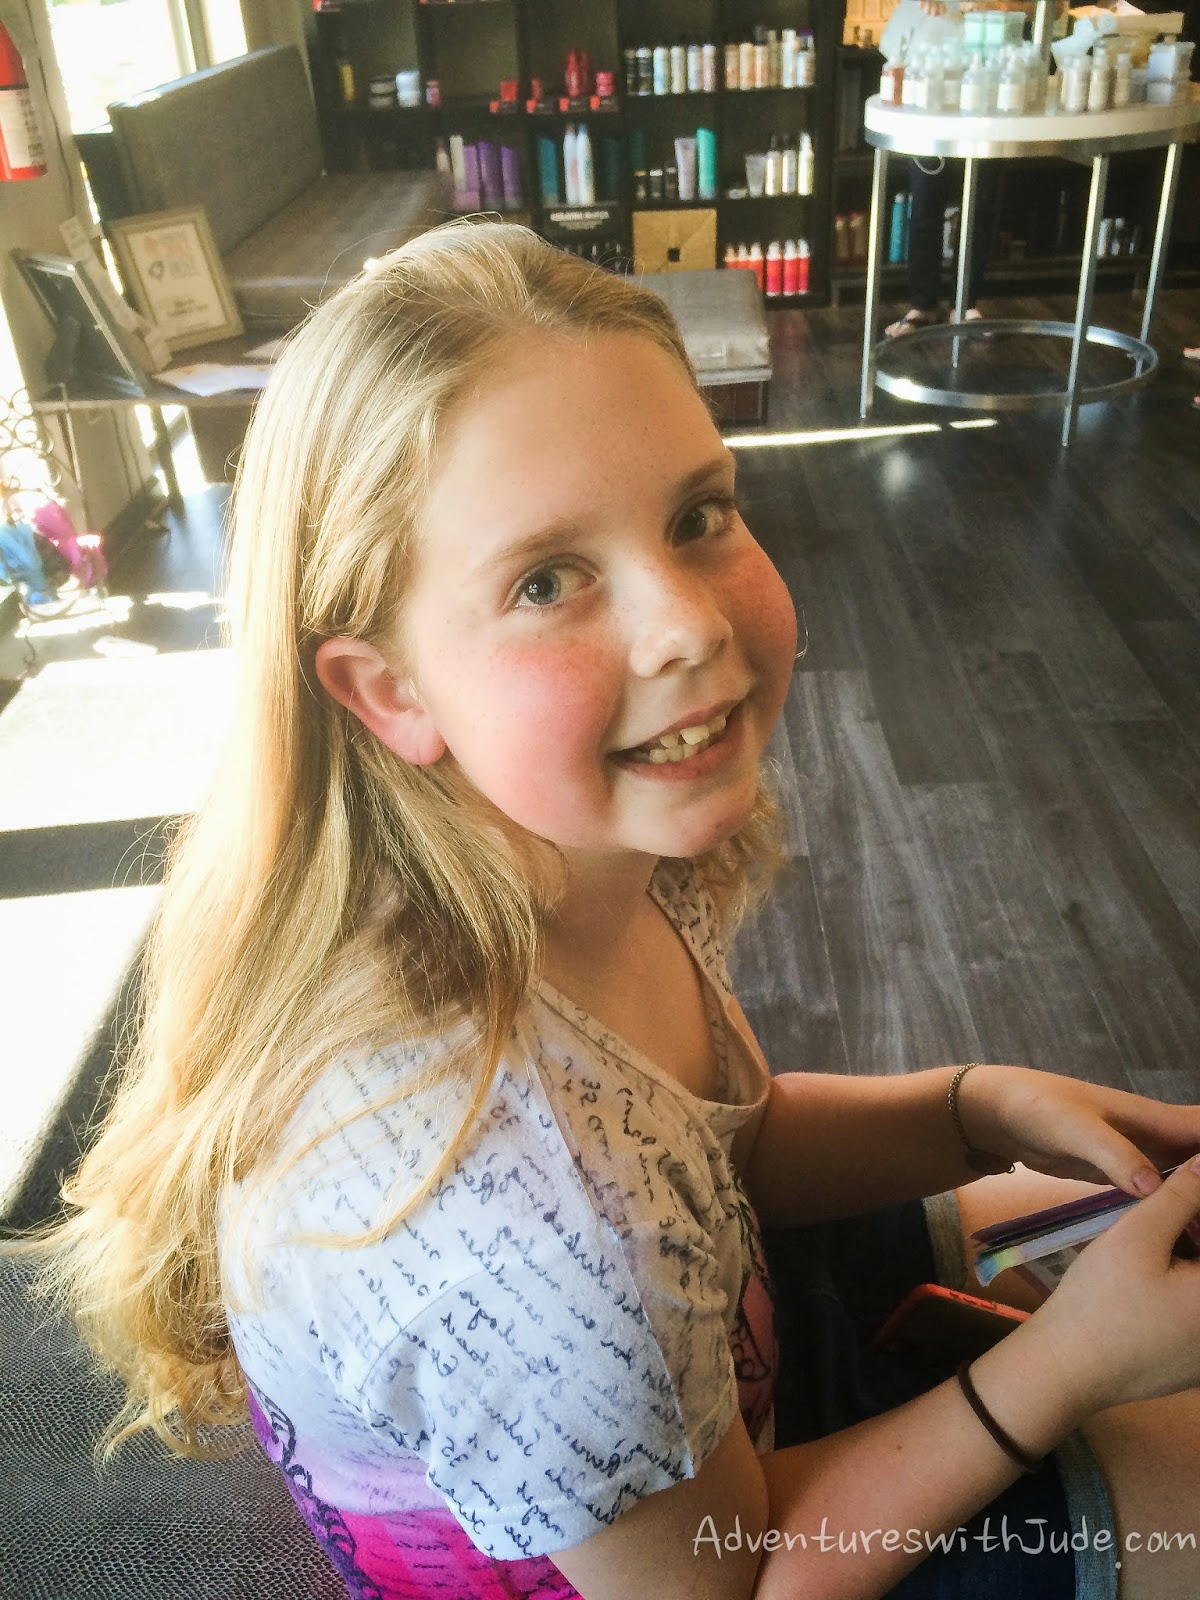 Adventures with Jude: A Helping Haircut - Donating to Wigs ...